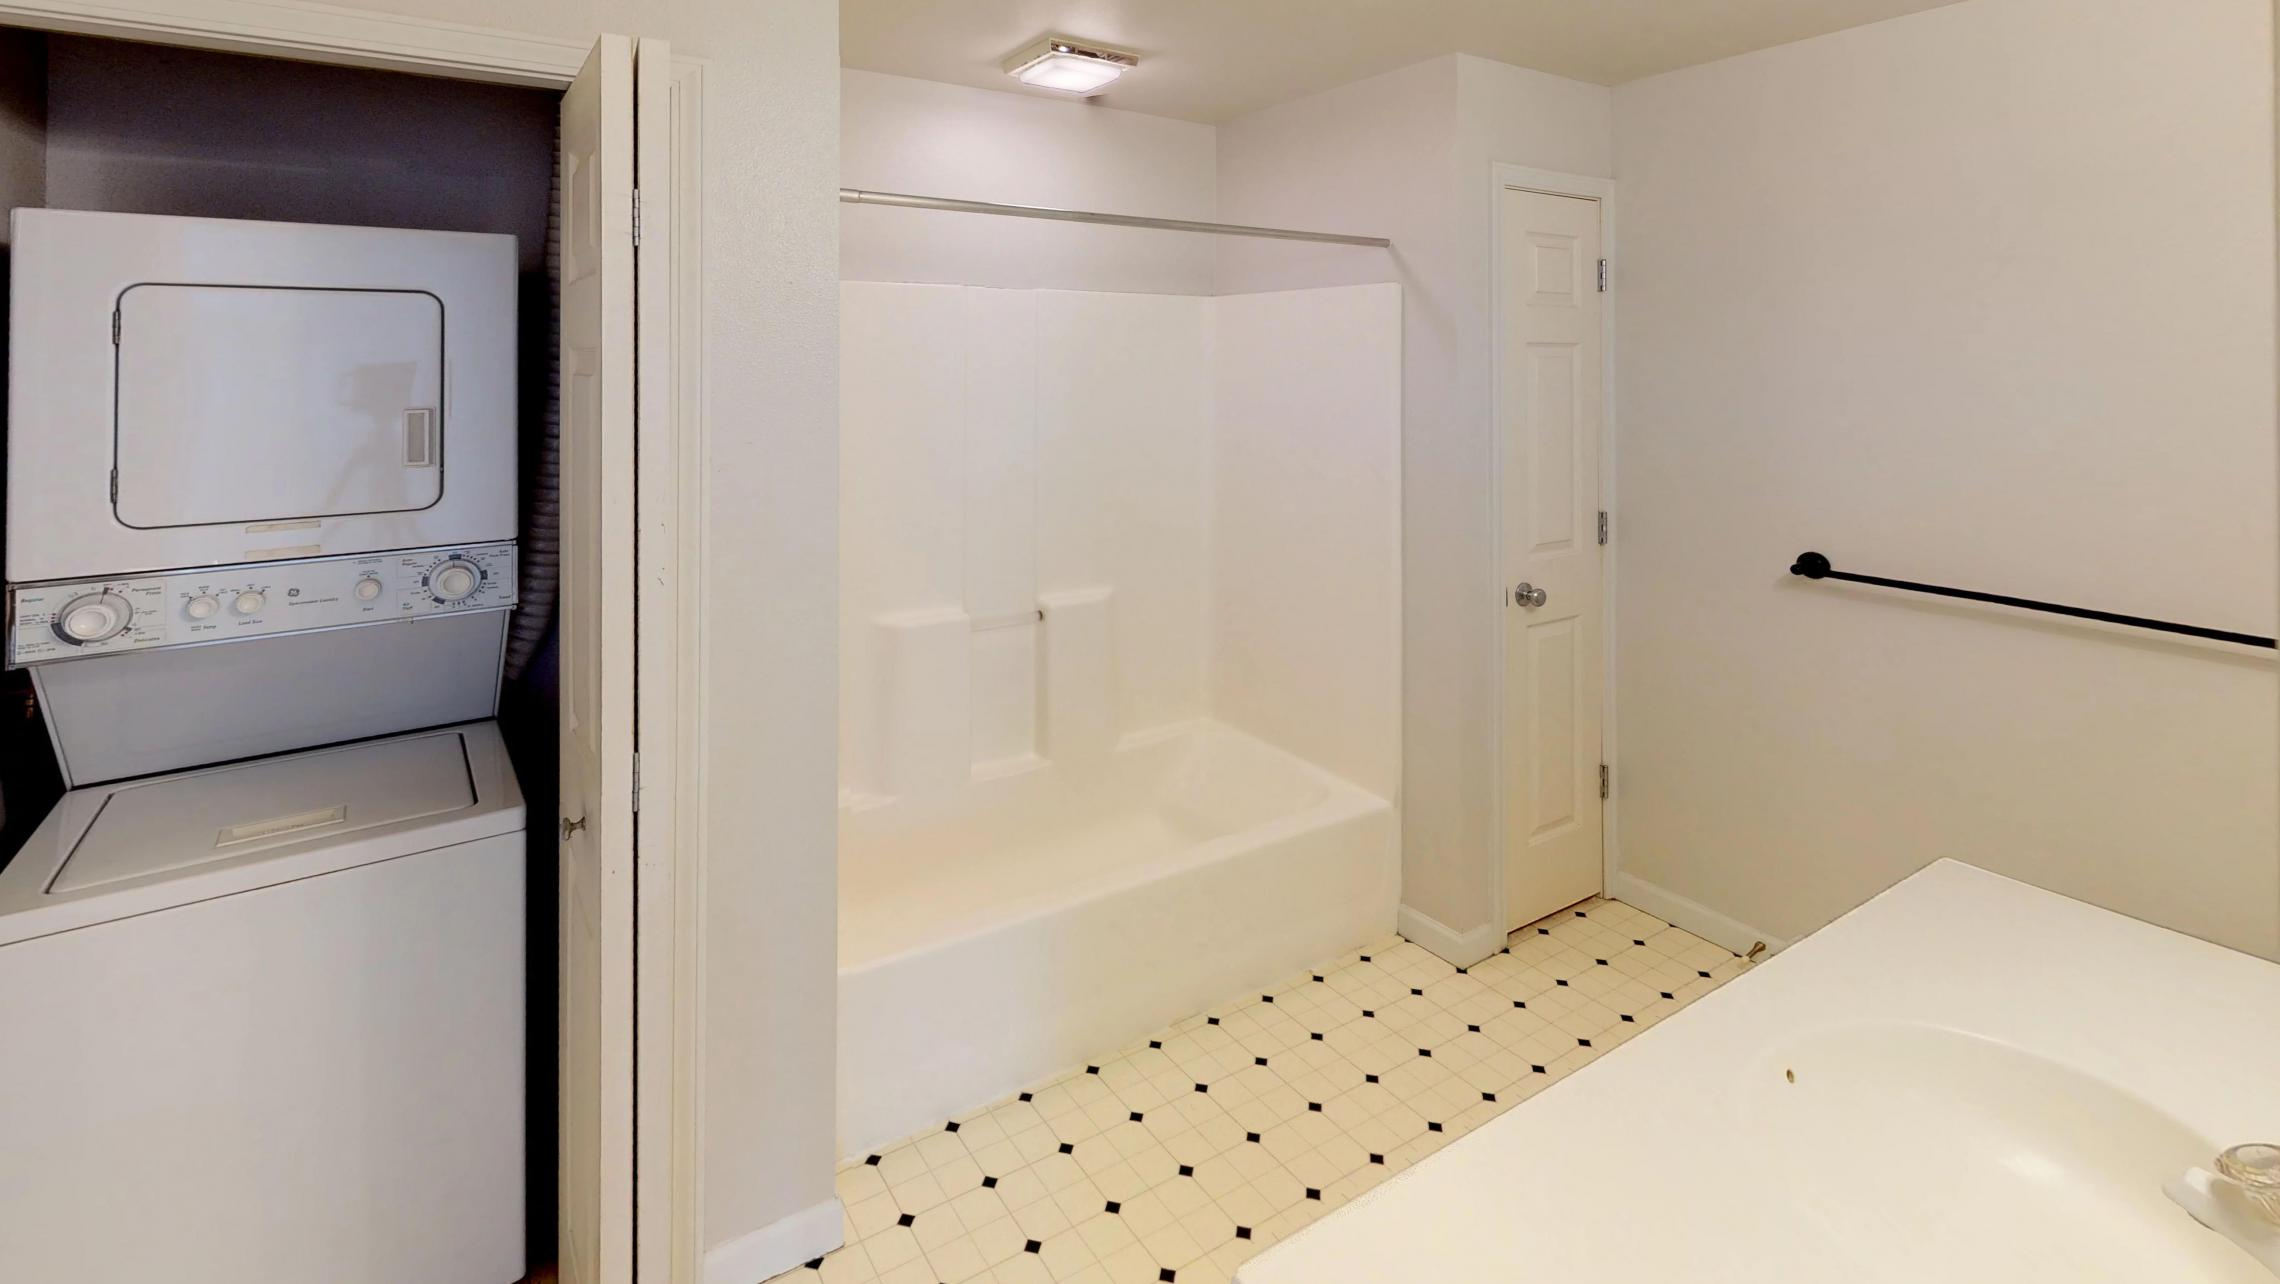 Wilson-Bay-Apartment-303-One-Bedroom-Downtown-Madison-Balcony-Top-Floor-Vaulted-Ceiling-Living-Bathroom-Laundry